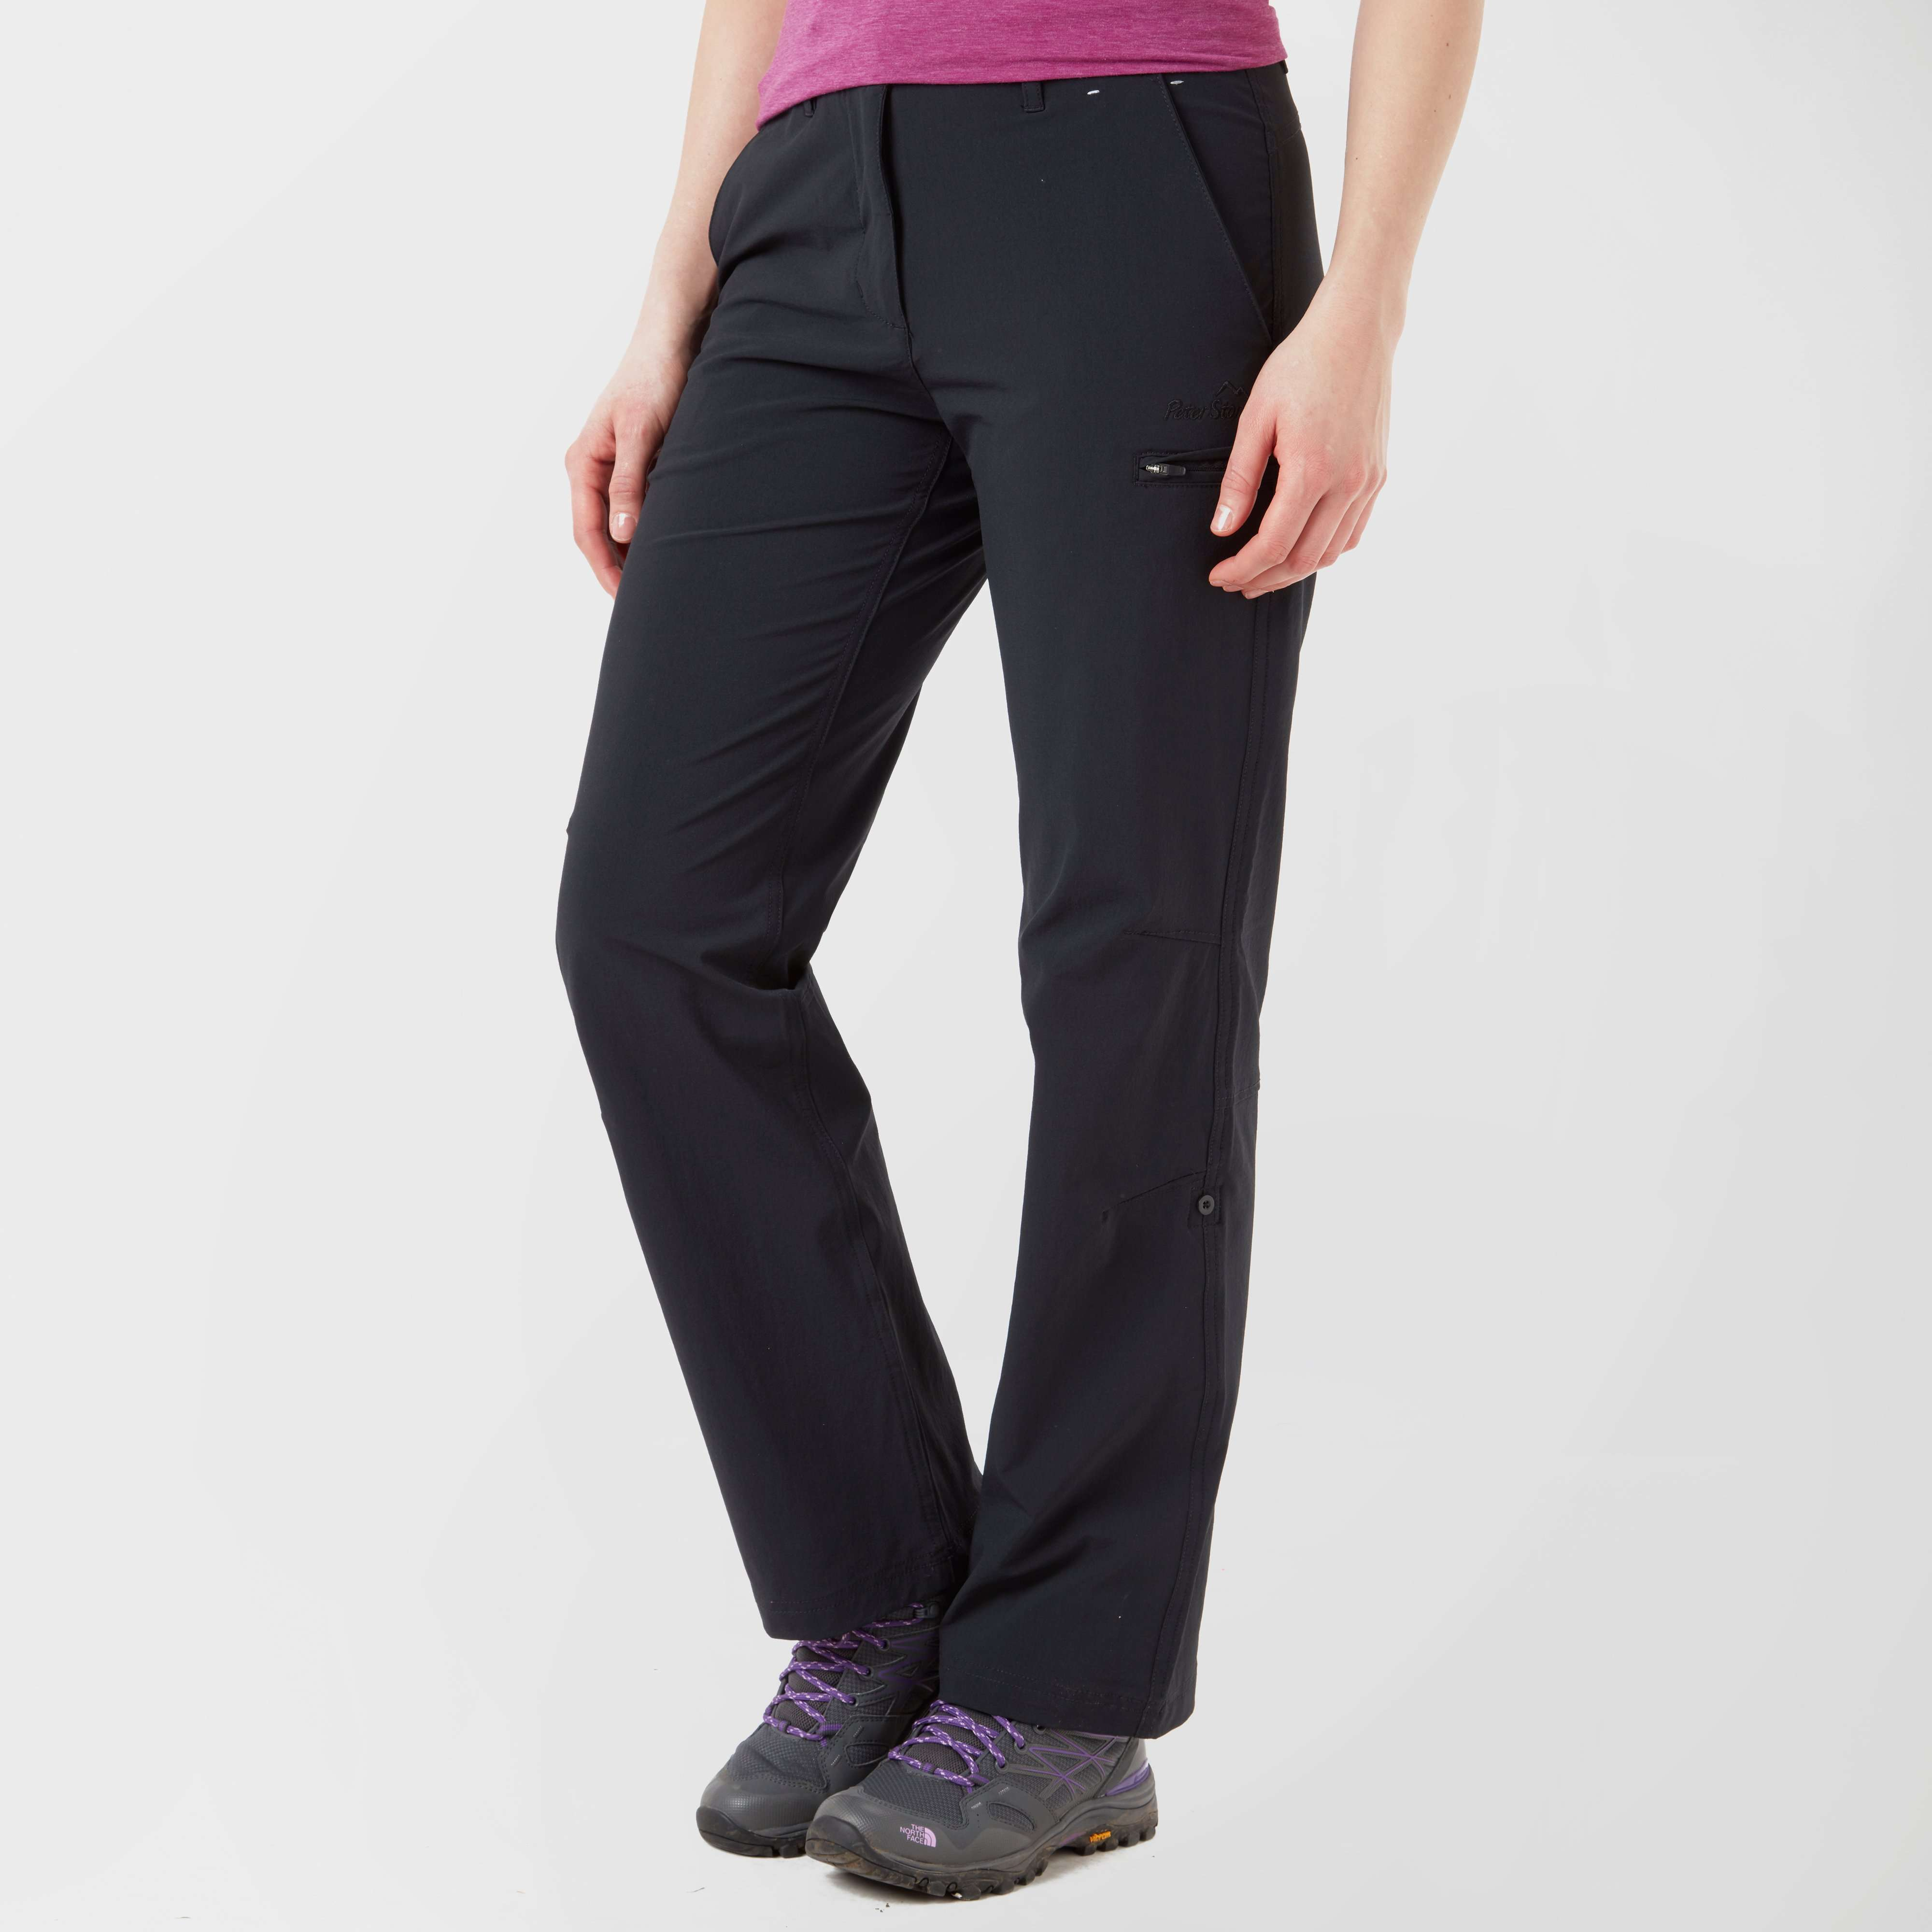 PETER STORM Women's Hike Stretch Roll-Up Pant